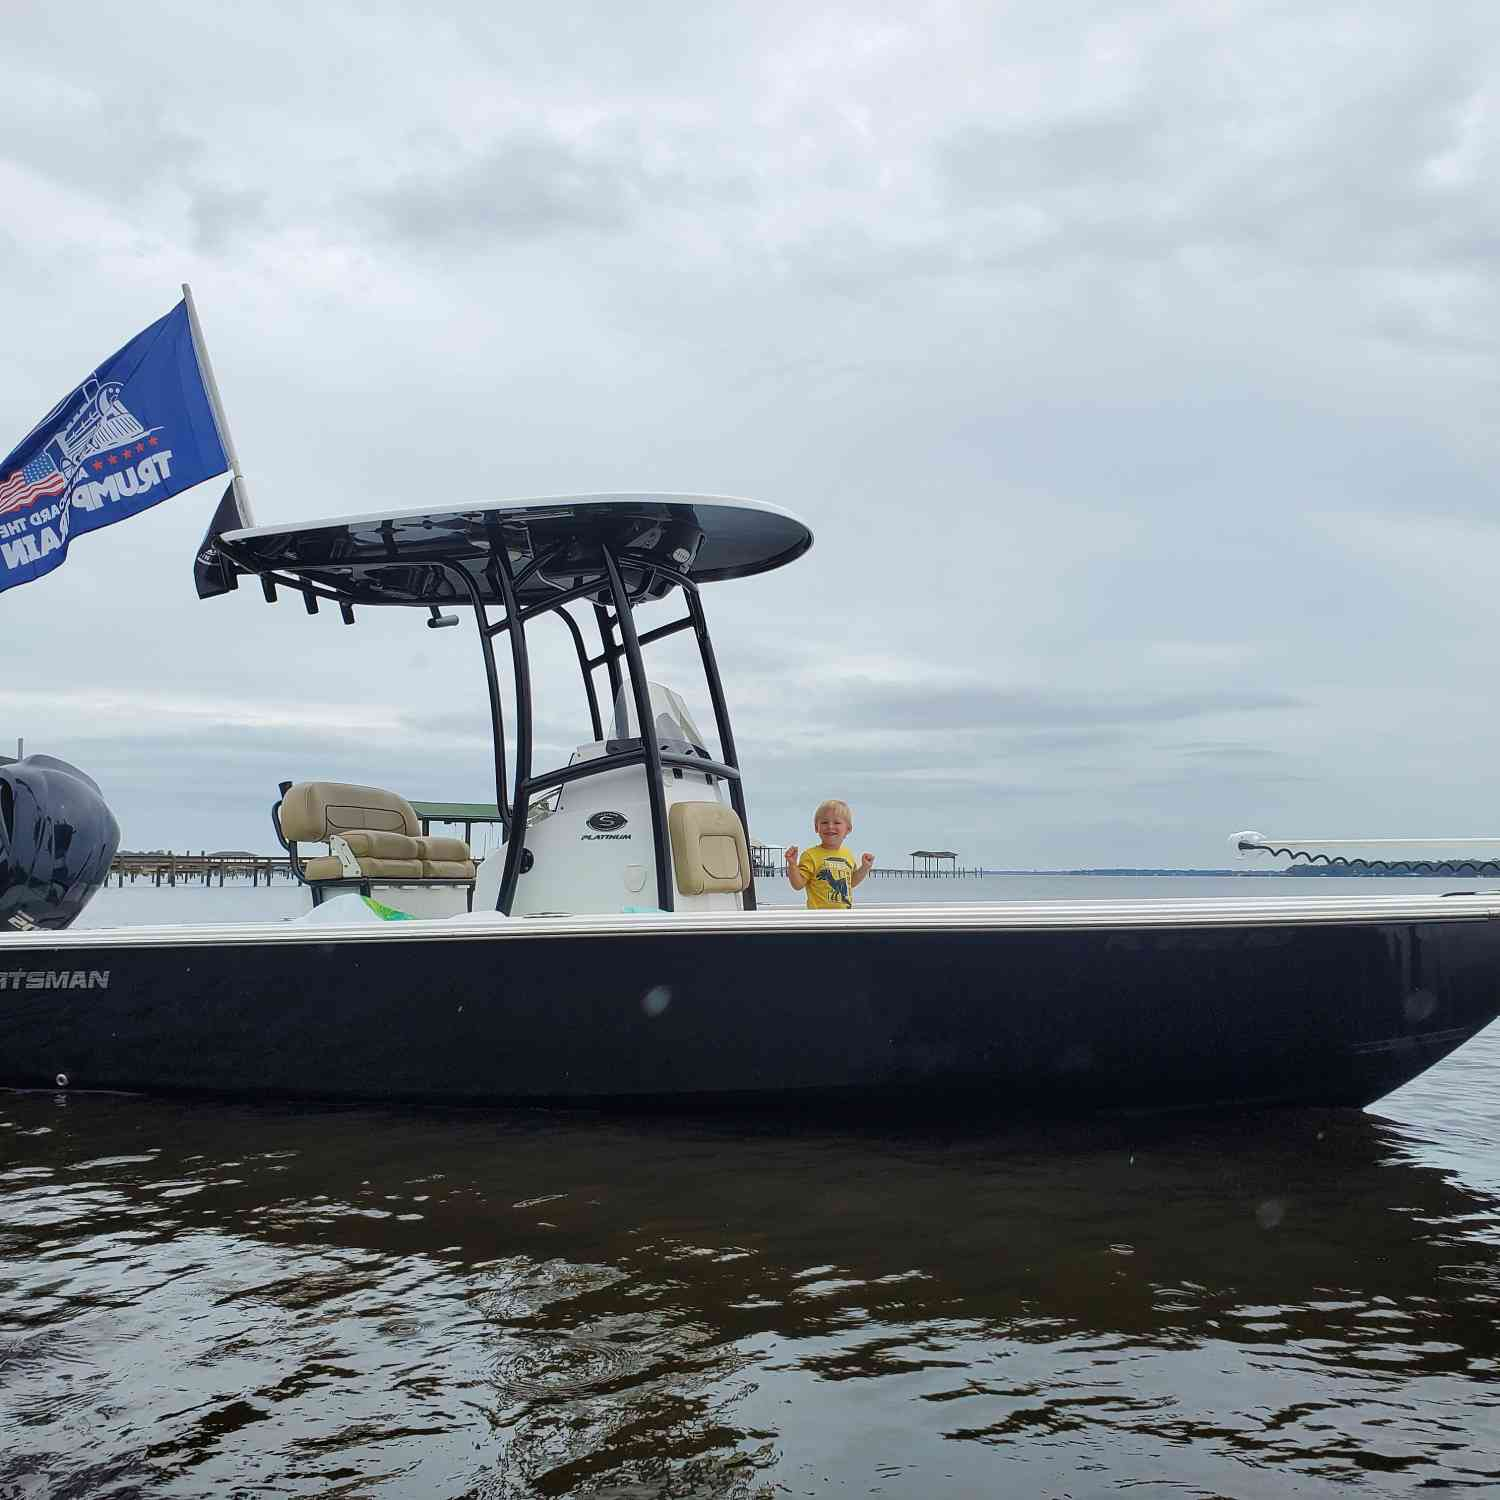 Title: Keepn it reel - On board their Sportsman Masters 227 Bay Boat - Location: Green cove, fl. Participating in the Photo Contest #SportsmanJune2020